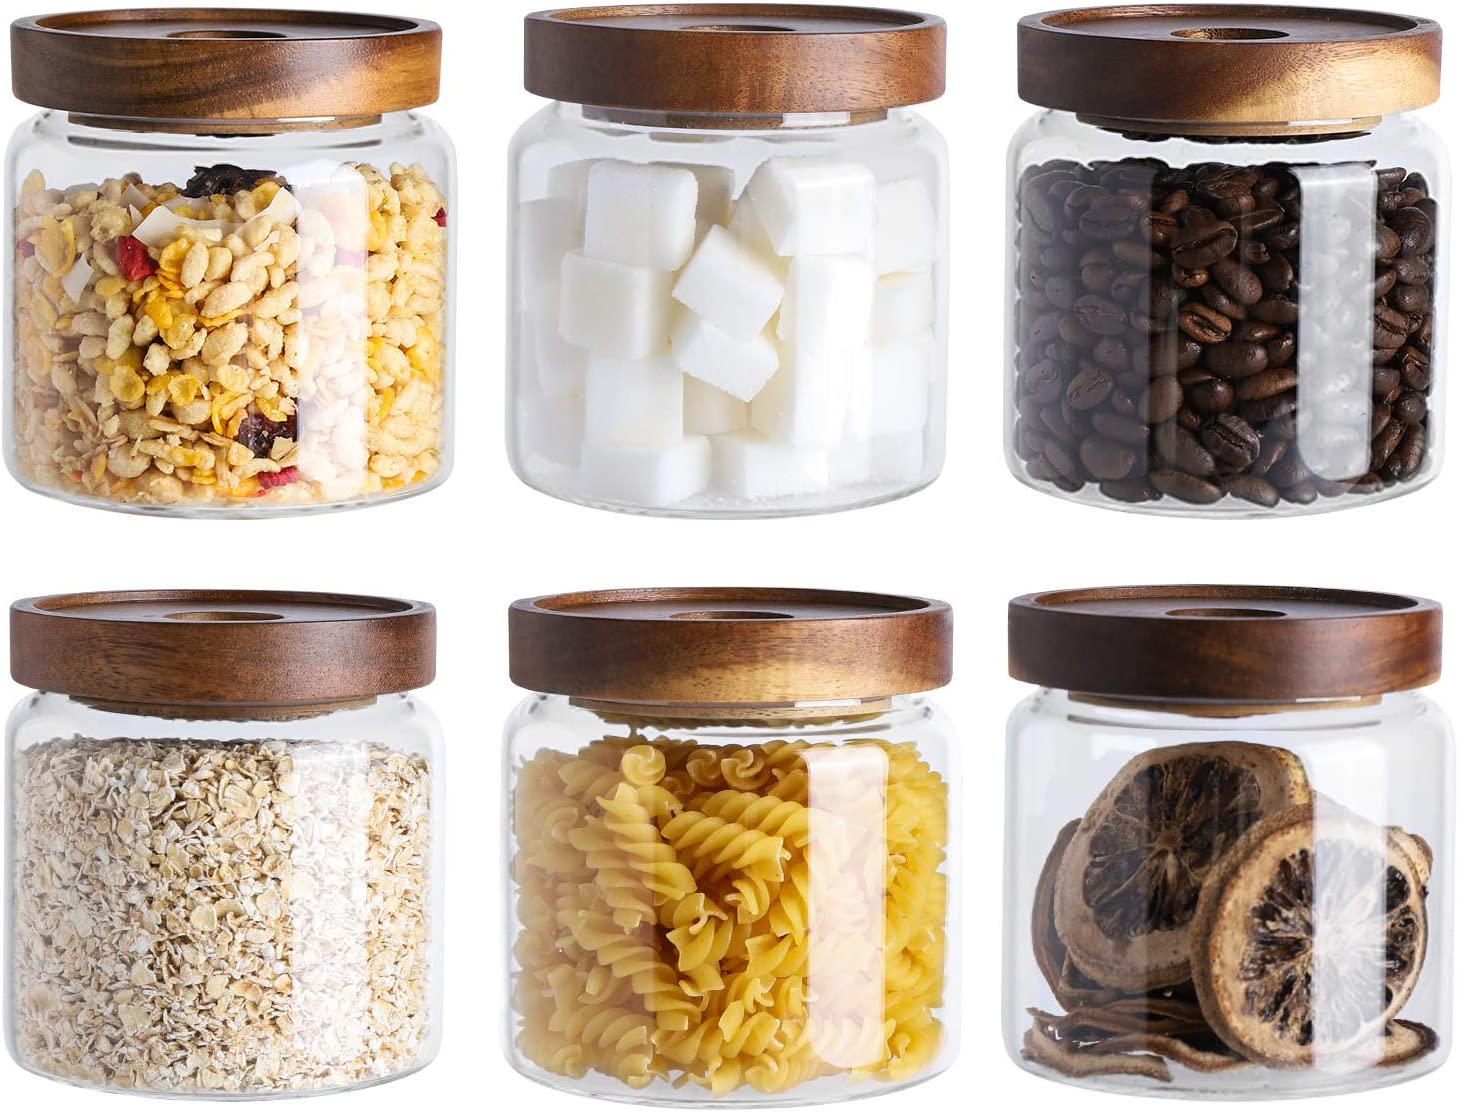 Kanwone Glass Storage Jars Set of 6, 17 Ounce Food Storage Containers with airtight lids, Glass Canisters for Pantry, kitchen, Flour, Sugar, Tea, Coffee, Snack, Spice and Herbs